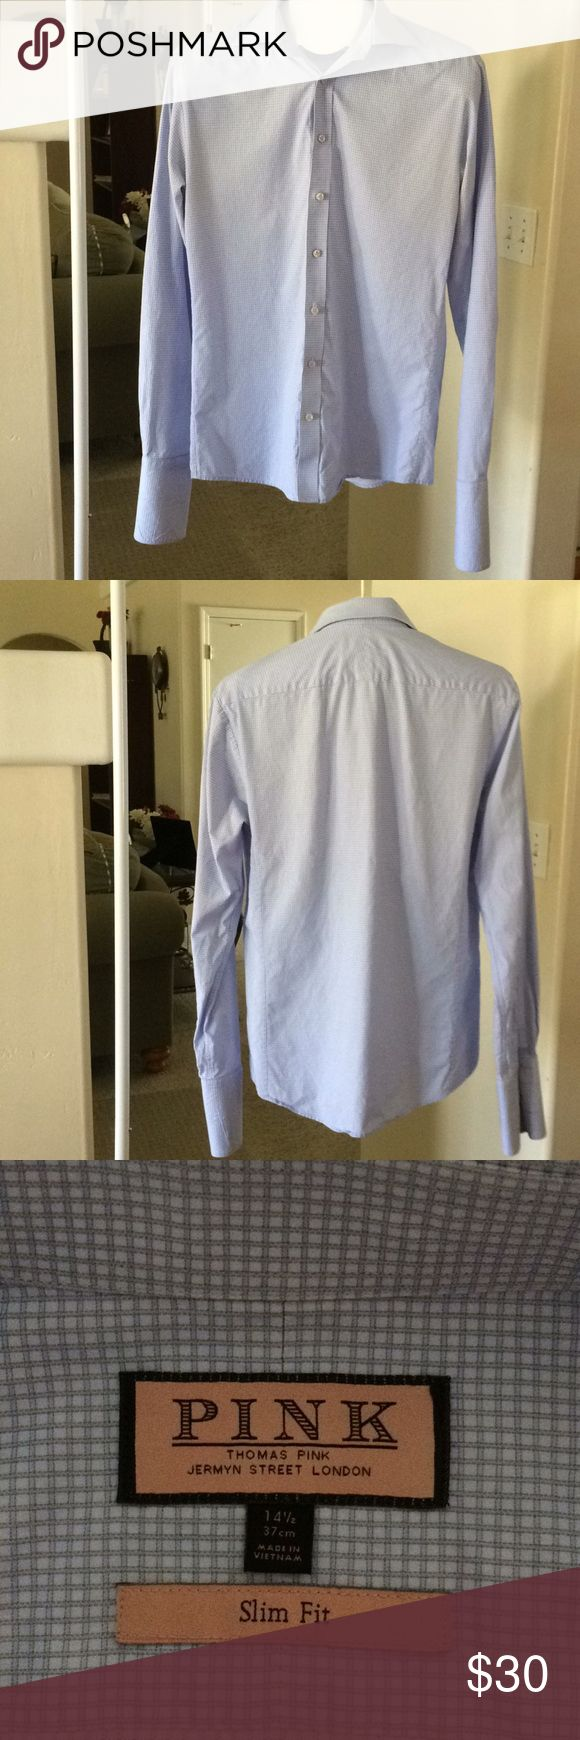 """Thomas Pink Men's Shirt Blue Gingham Sz 14 1/2 Thomas Pink Men's Shirt Blue Gingham Sz 14 1/2 Length: 26"""" from top of shoulder to bottom of the front part of the shirt. 28"""" in the back Chest: 36"""" laying flat 18 inches Thomas Pink Shirts Dress Shirts"""